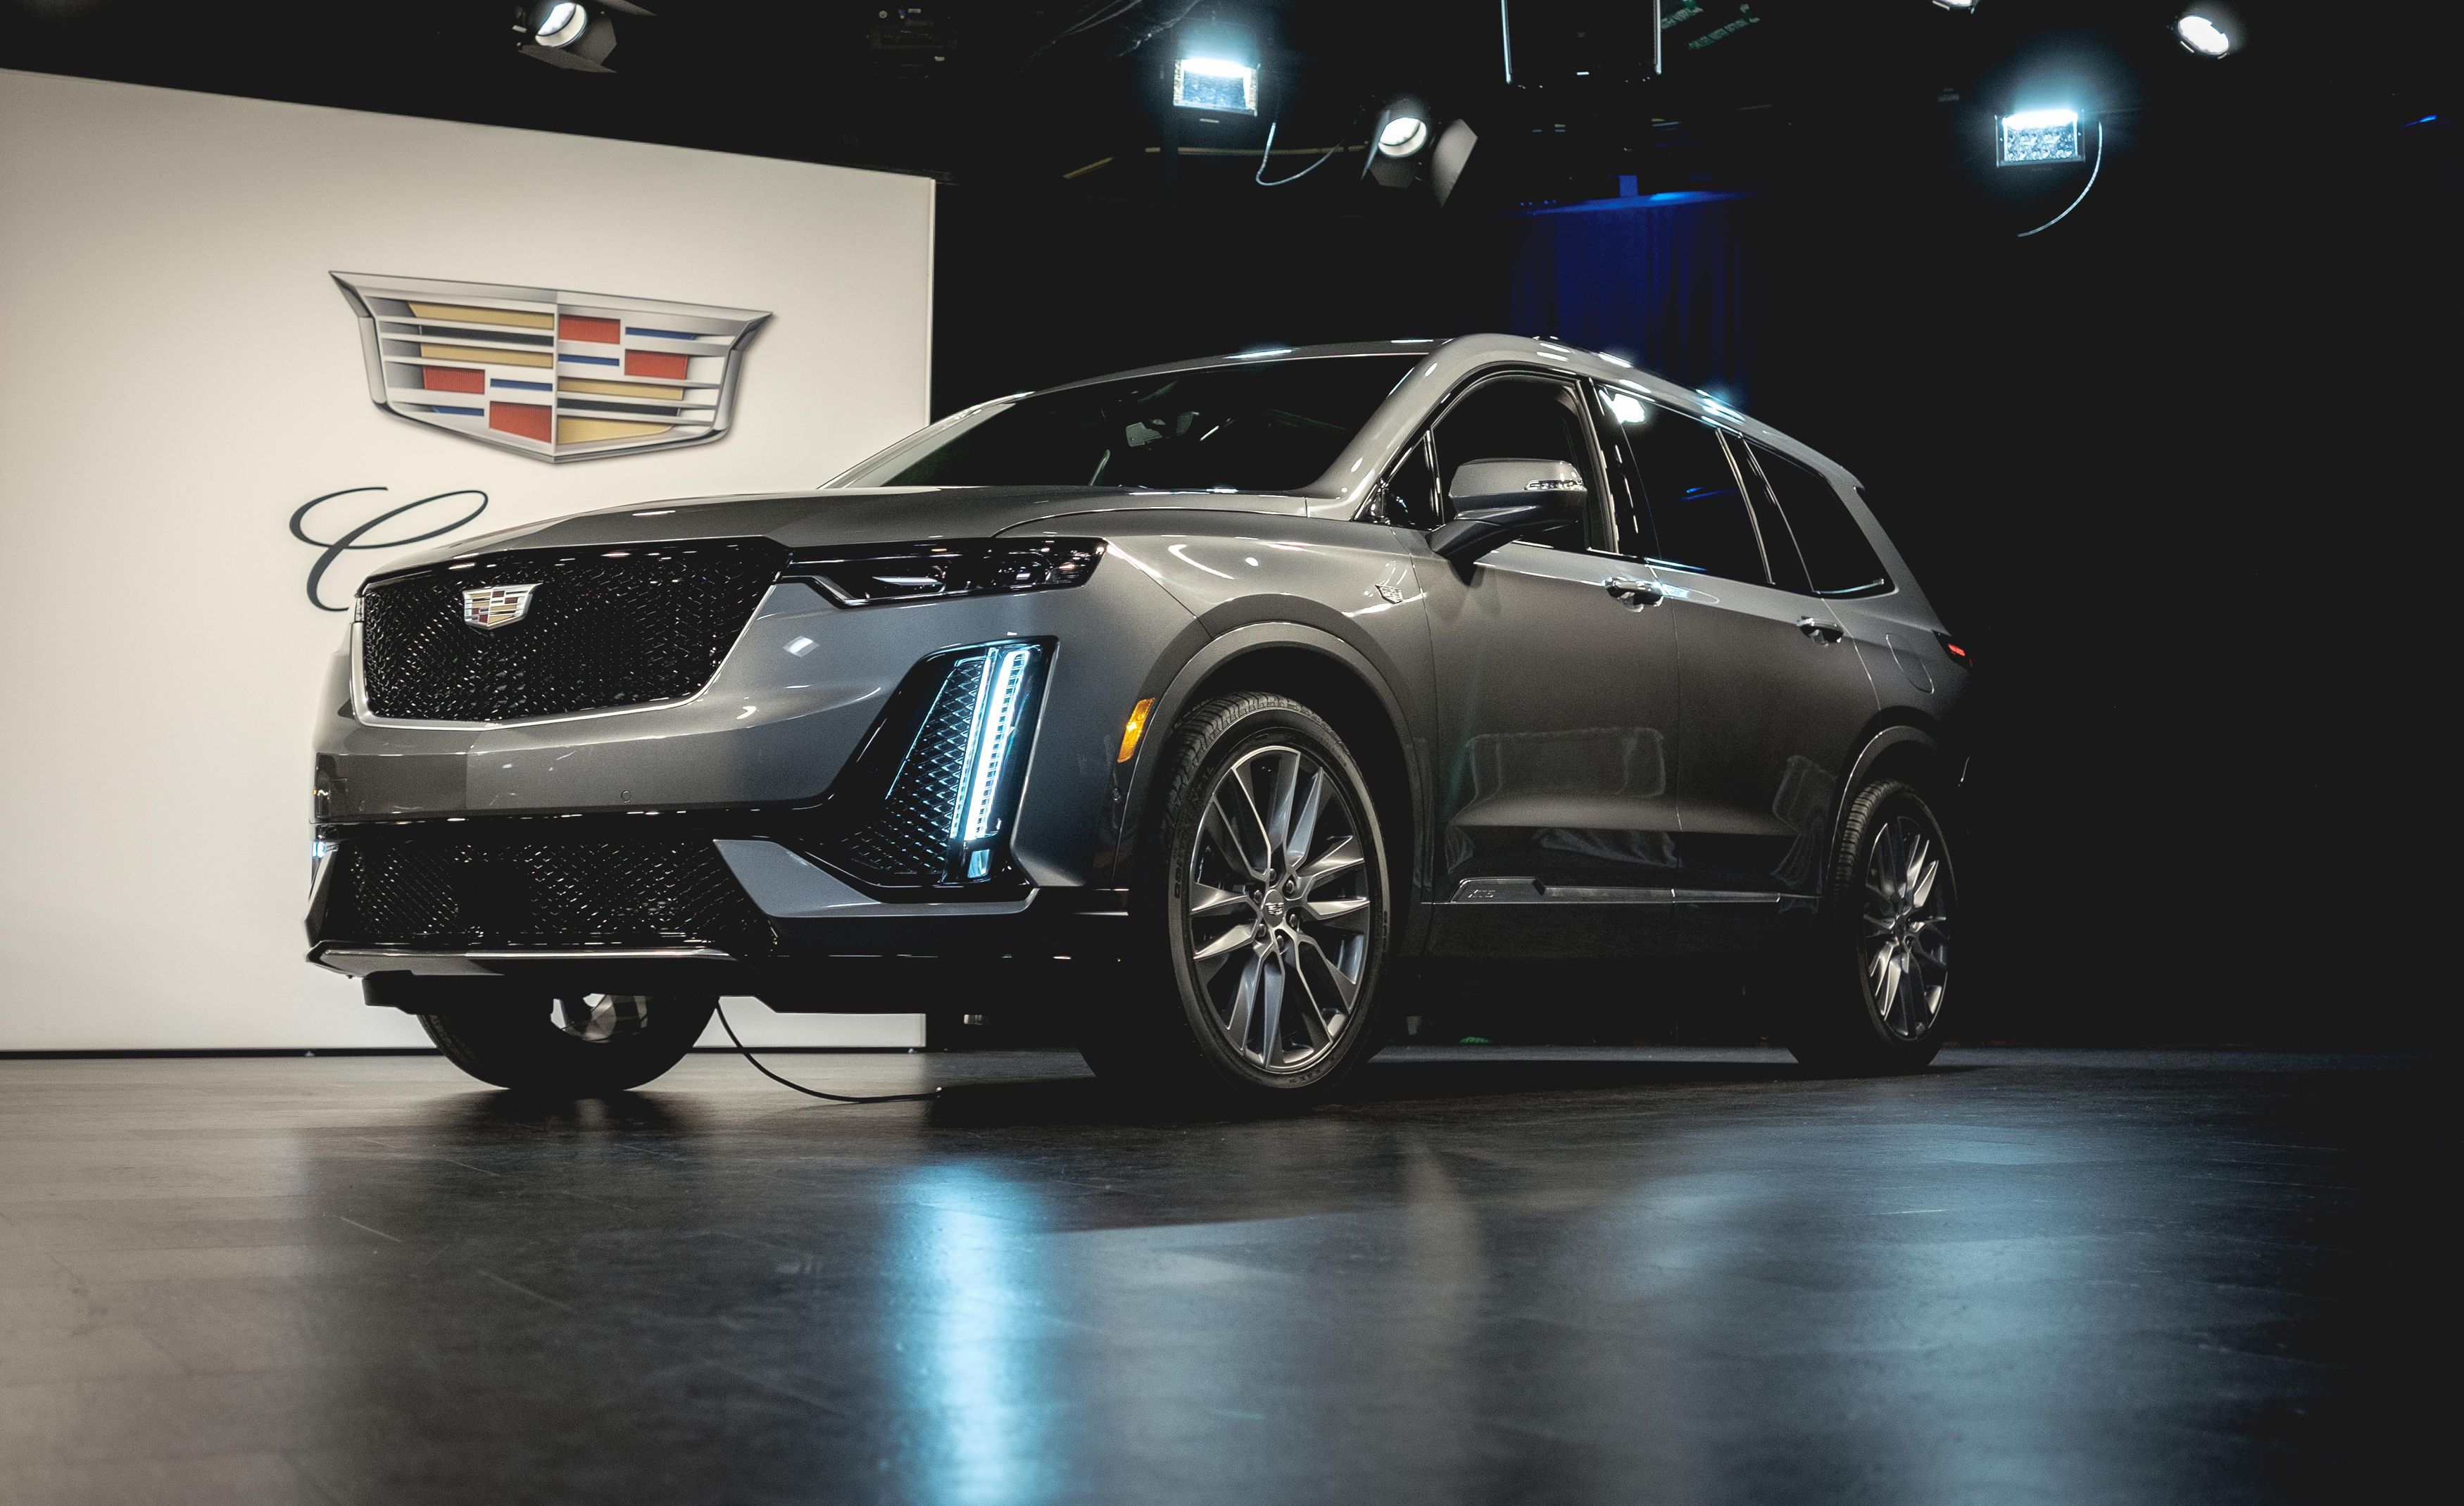 90 A 2020 Cadillac Escalade Luxury Suv Concept and Review